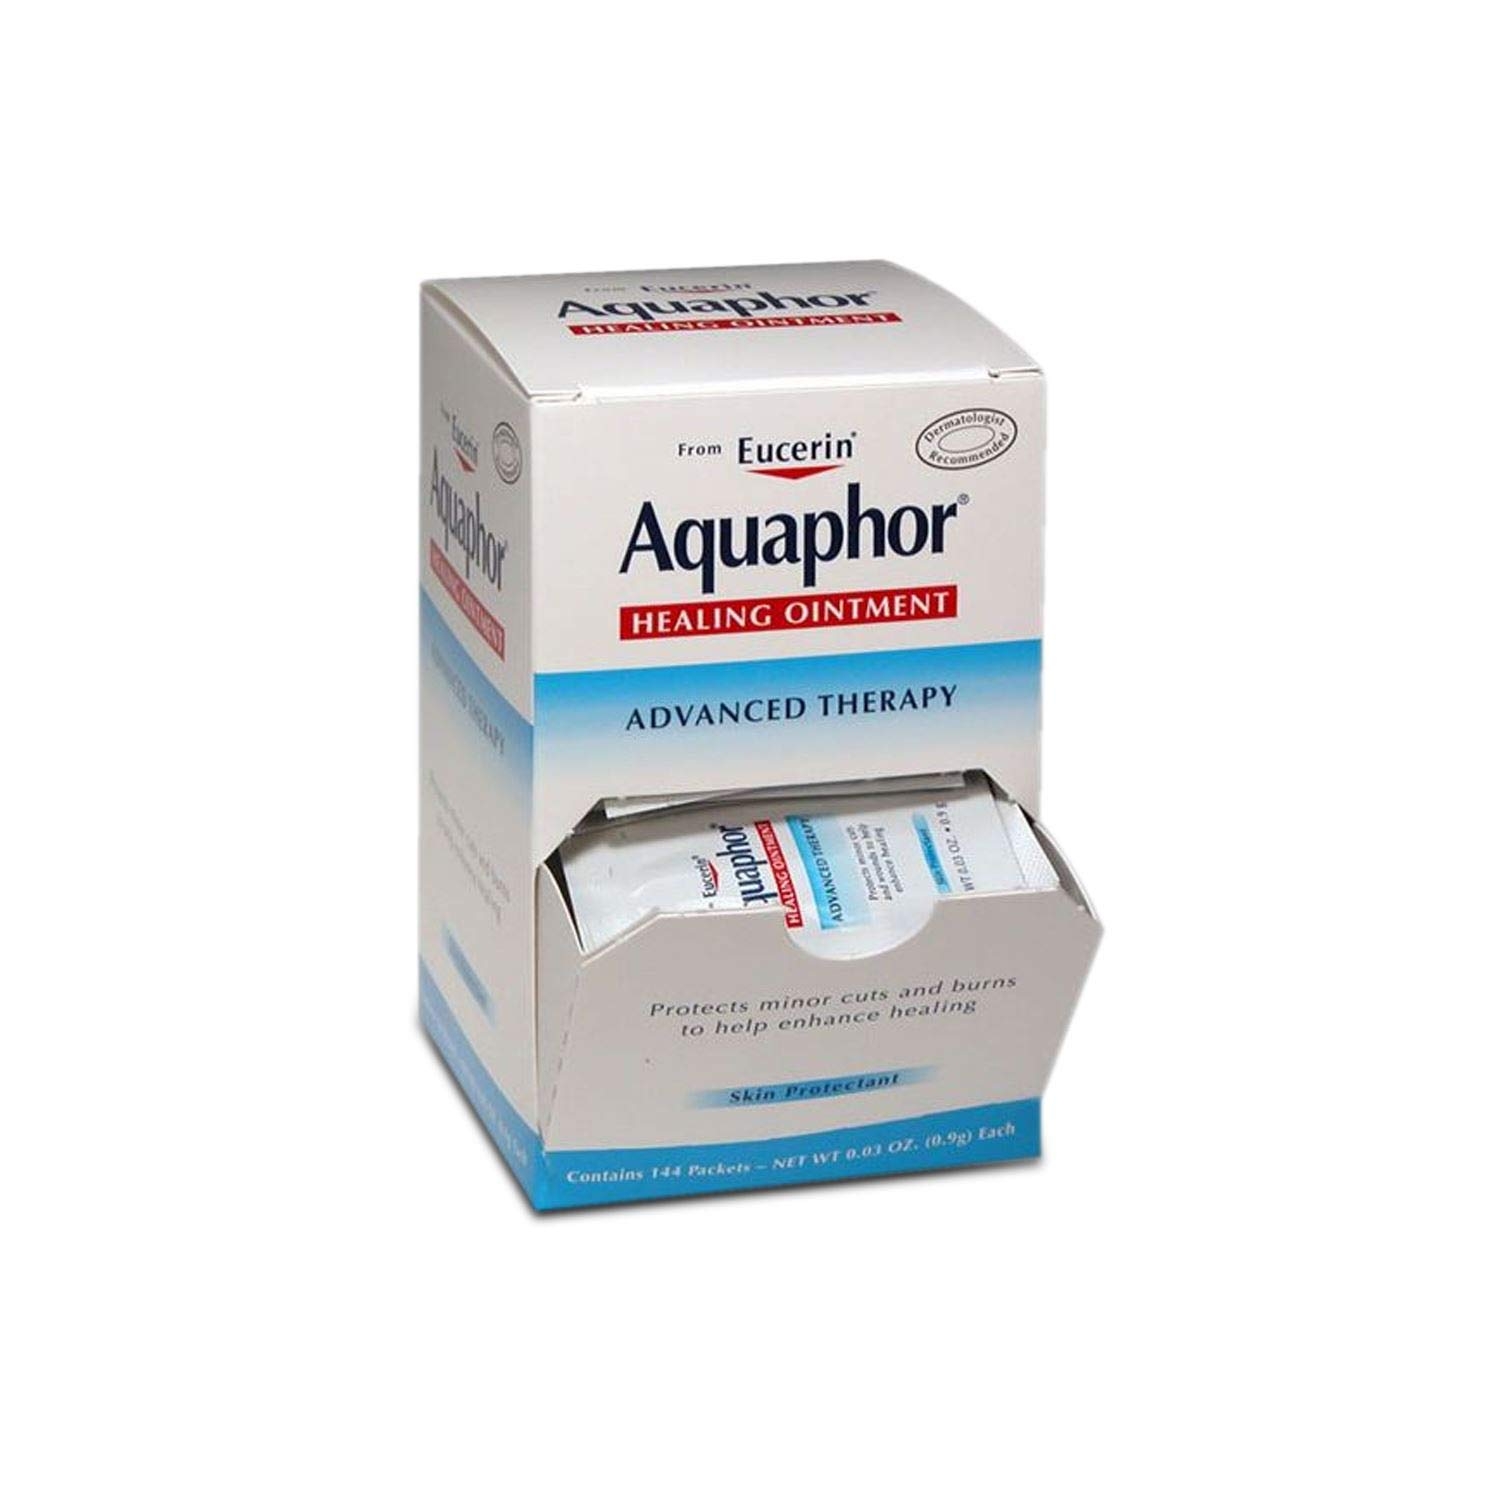 Aquaphor Healing Ointment Advanced Therapy - .9g - Box of 144 Packets by Aquaphor